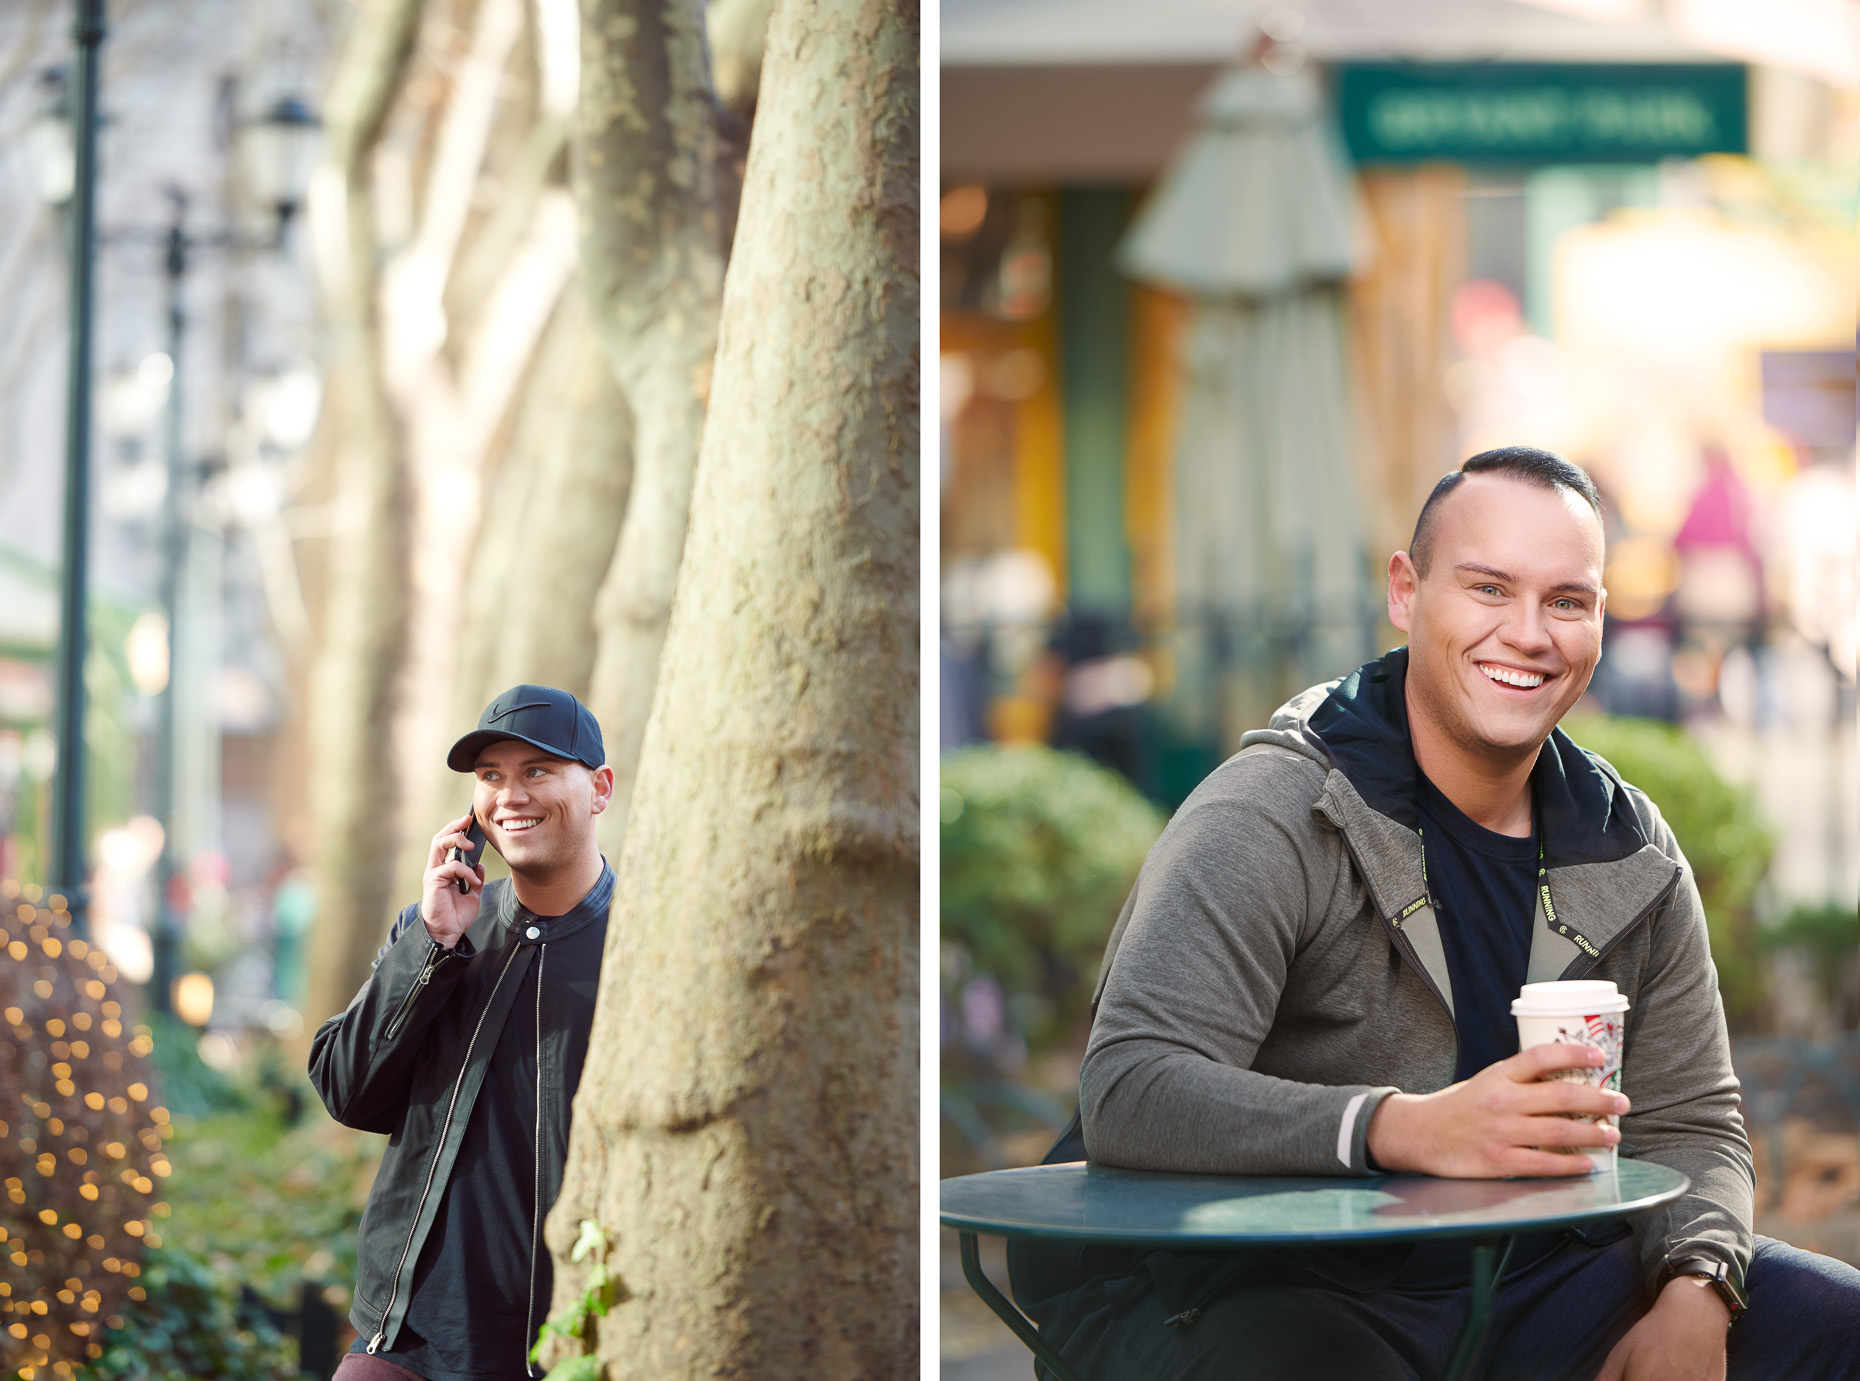 Dustin Brand with coffee and phone | Le-Vel editorial